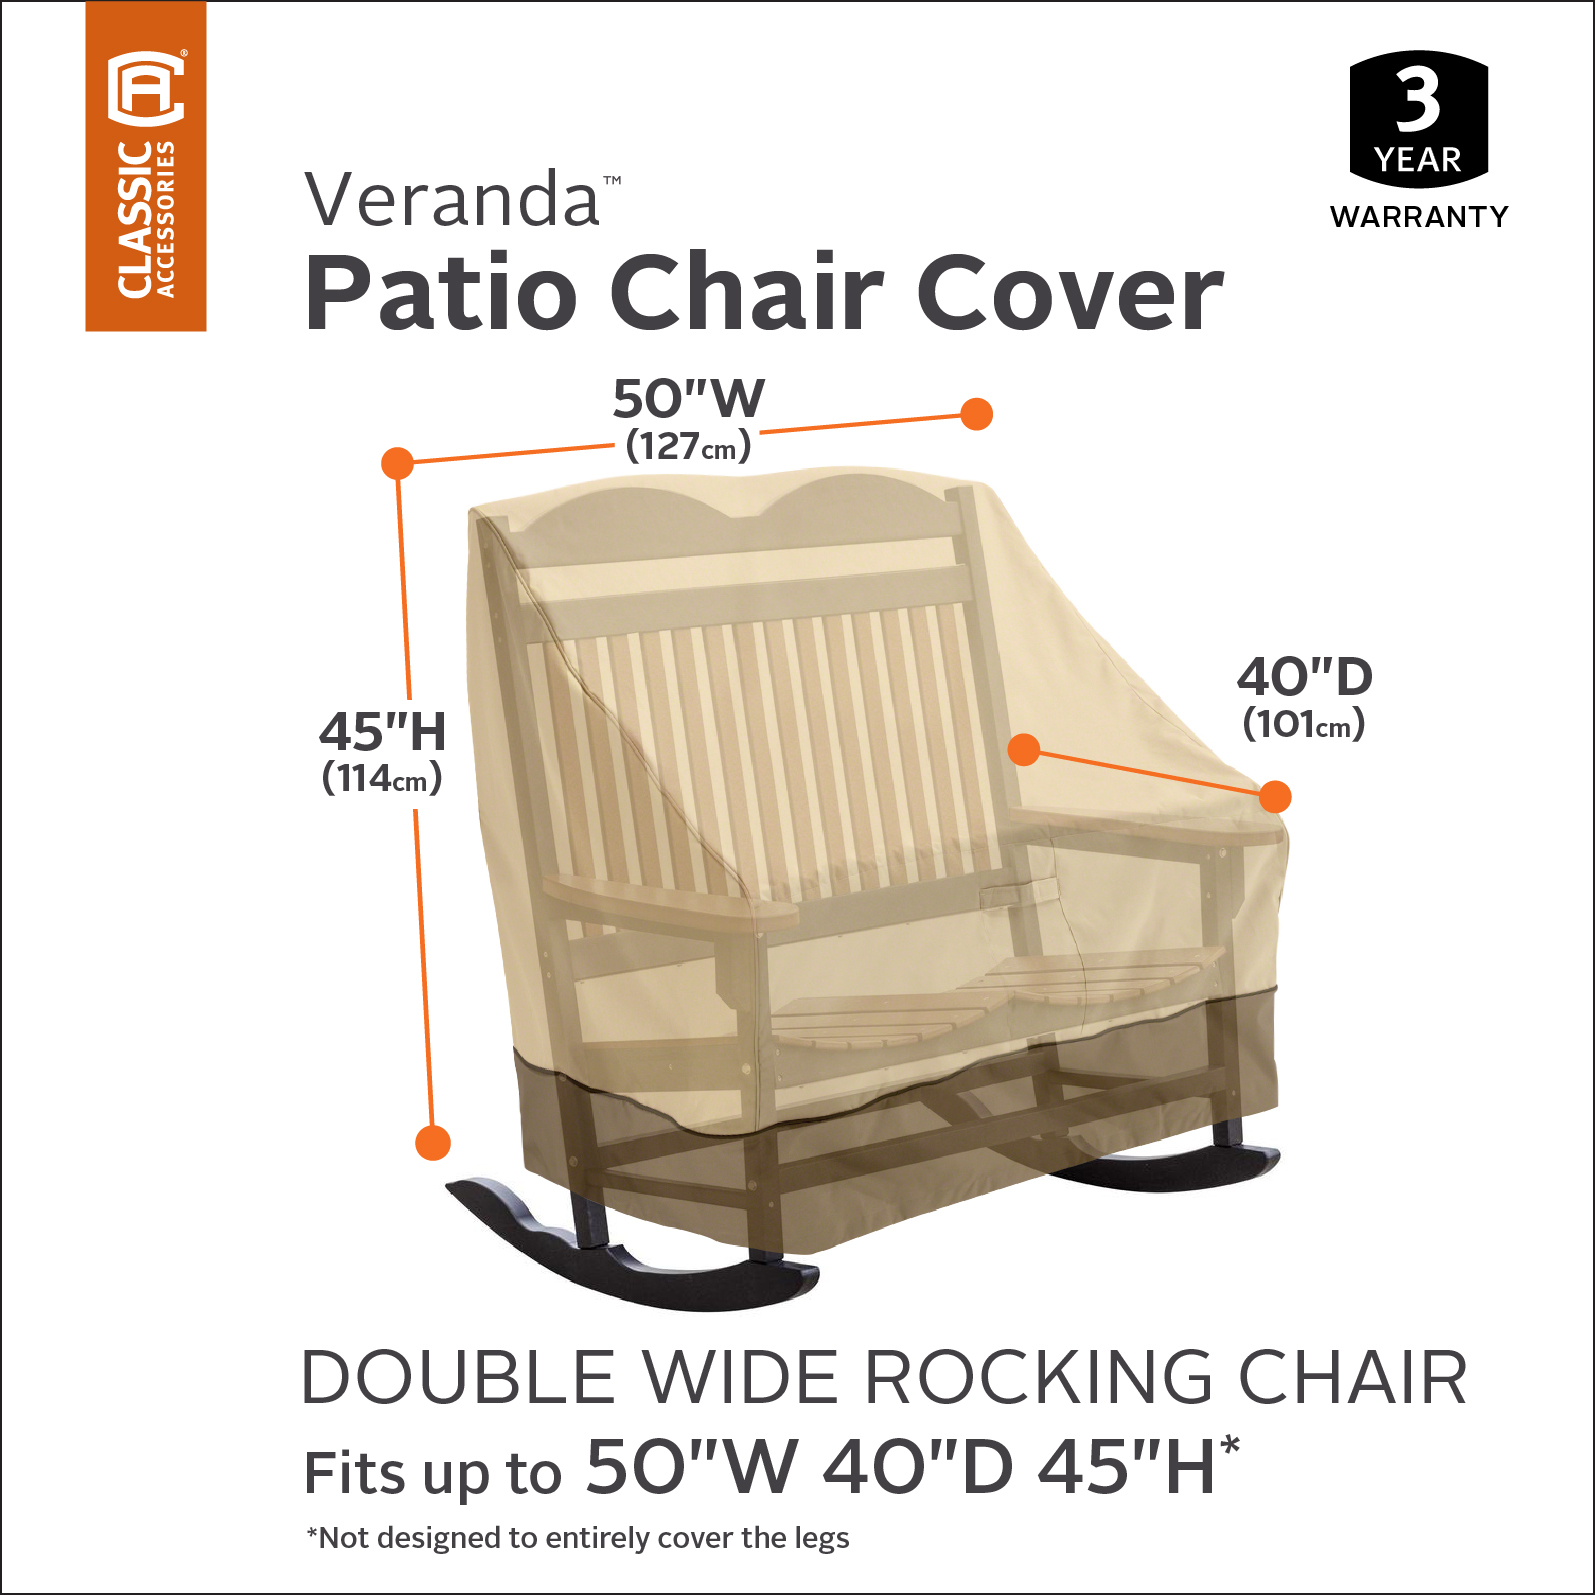 Classic Accessories Veranda™ Double-Wide Patio Rocking Chair Cover - Durable and Water Resistant Outdoor Furniture Cover (55-874-011501-00) - Walmart.com  sc 1 st  Walmart & Classic Accessories Veranda™ Double-Wide Patio Rocking Chair Cover ...